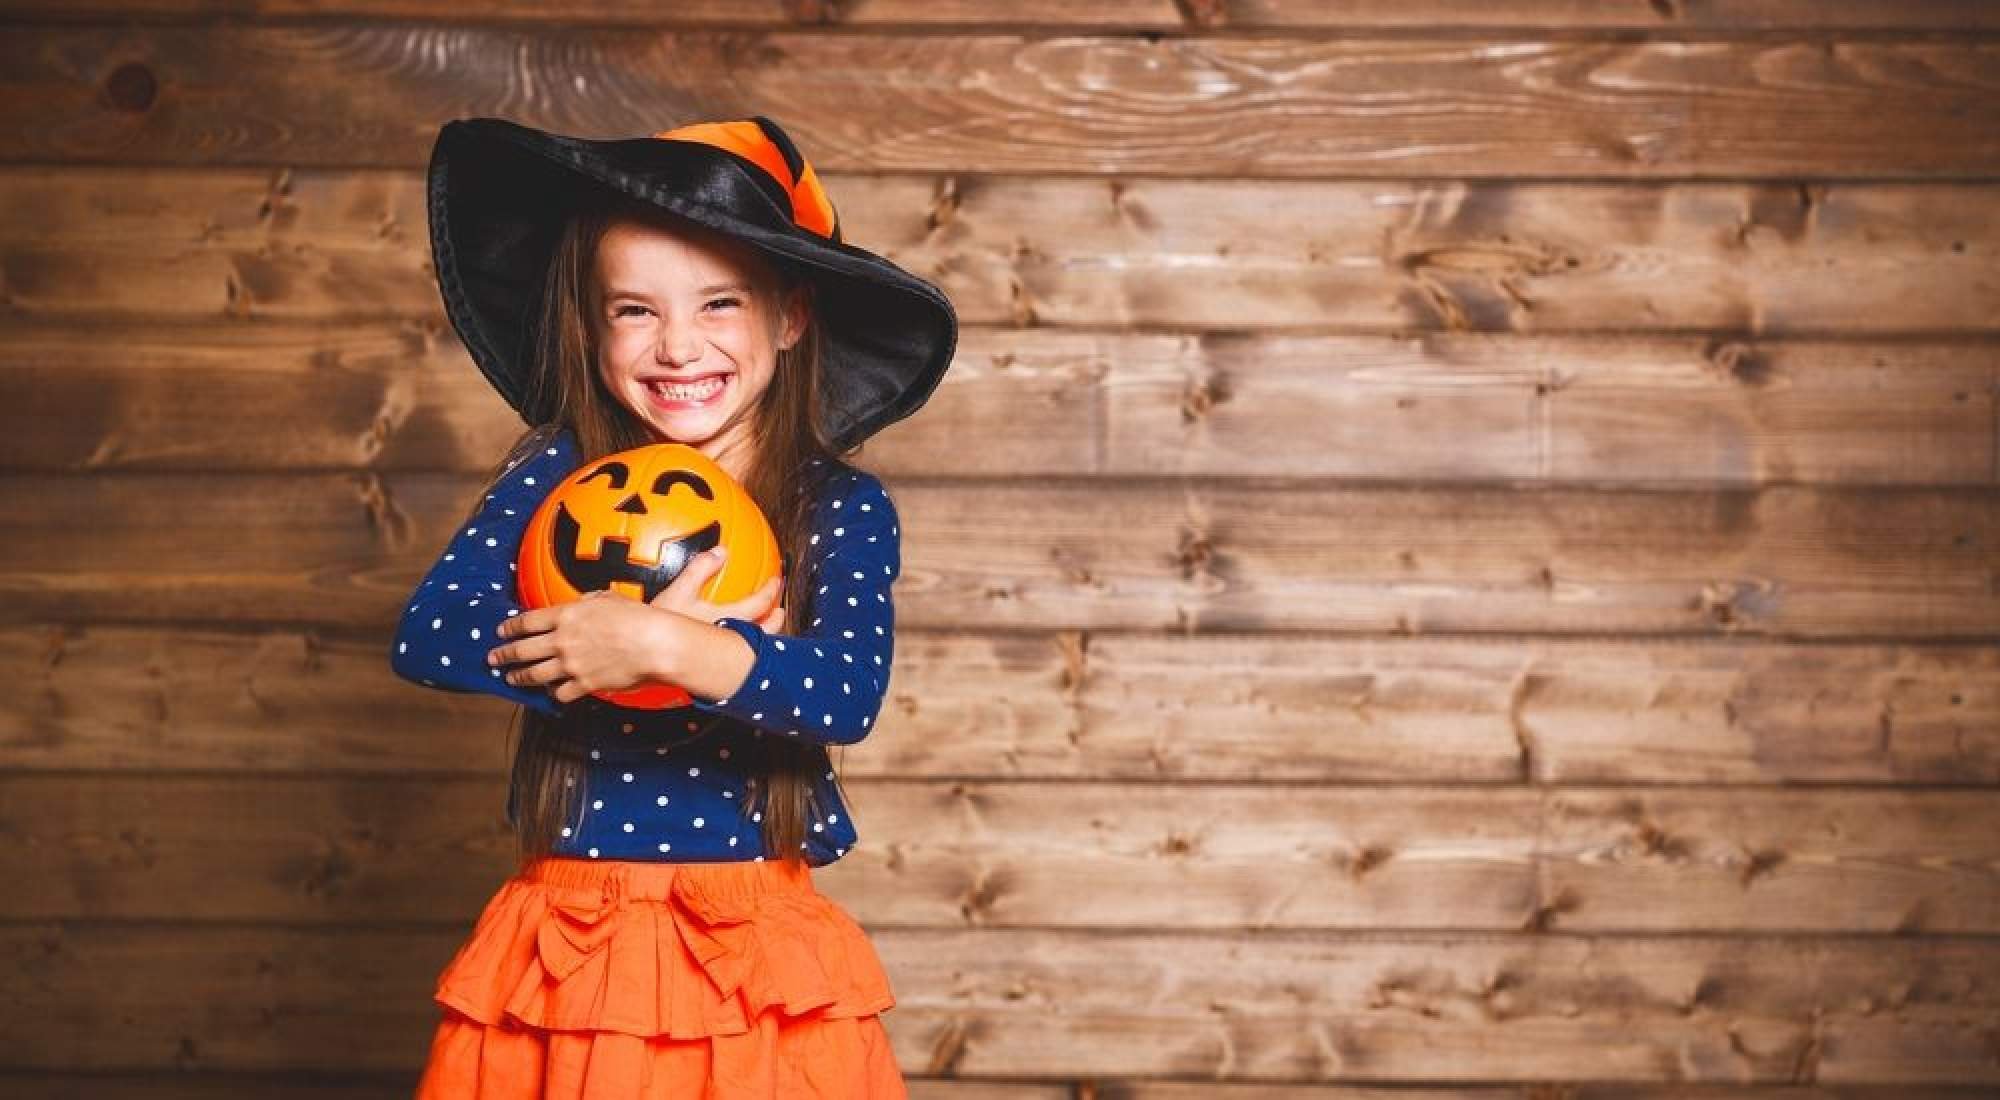 Halloween-Activities-for-Grand-kids-trick-or-treat-AllClear-Travel-Blog